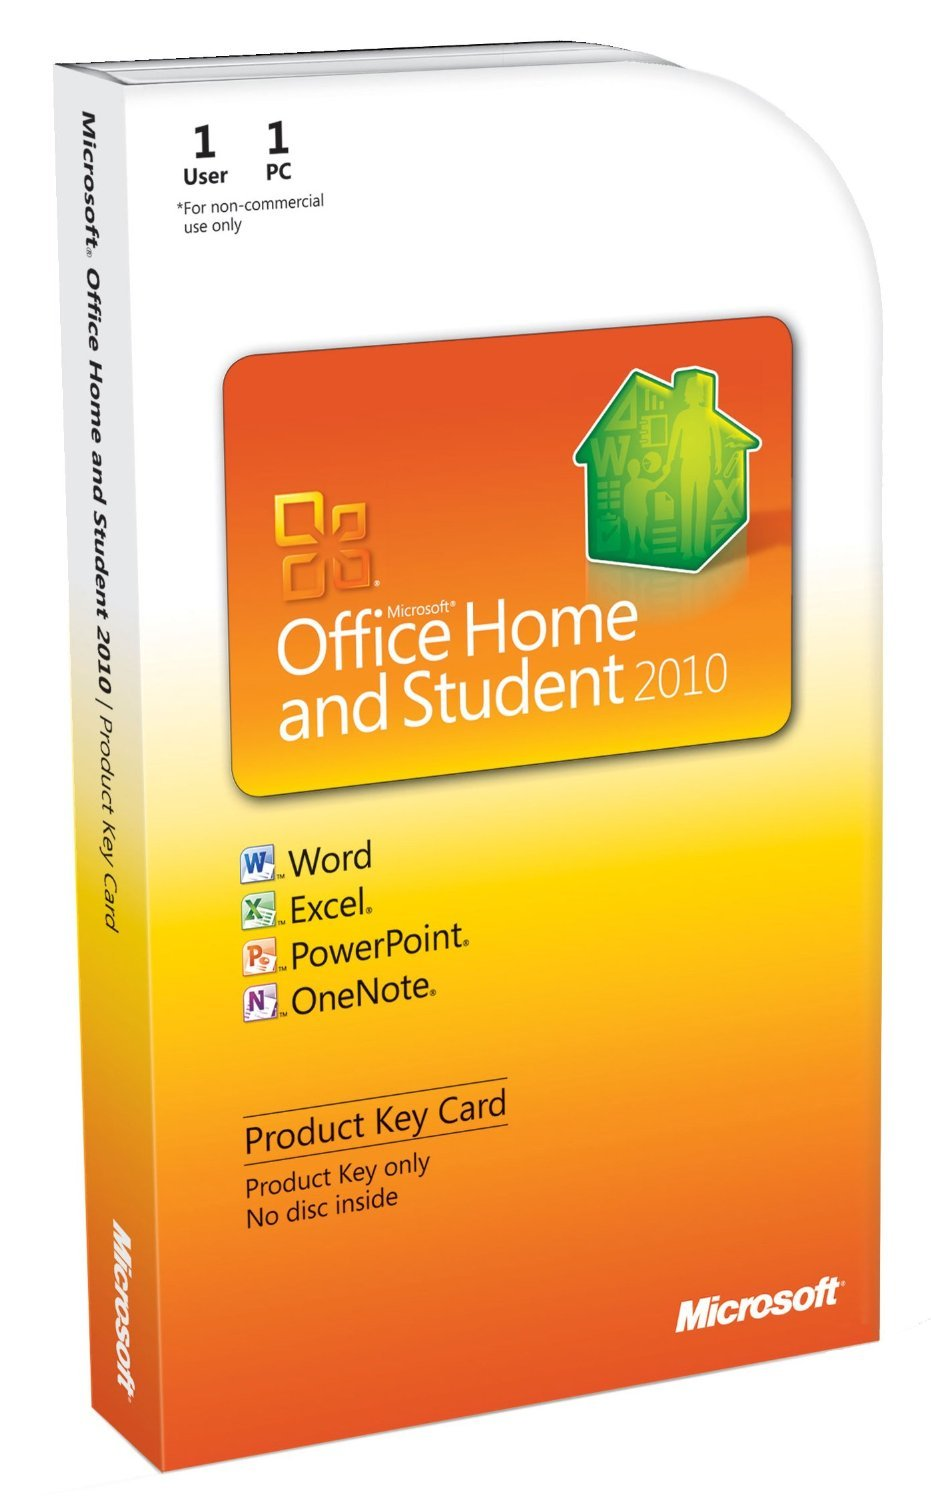 ms office 2010 home and student product key